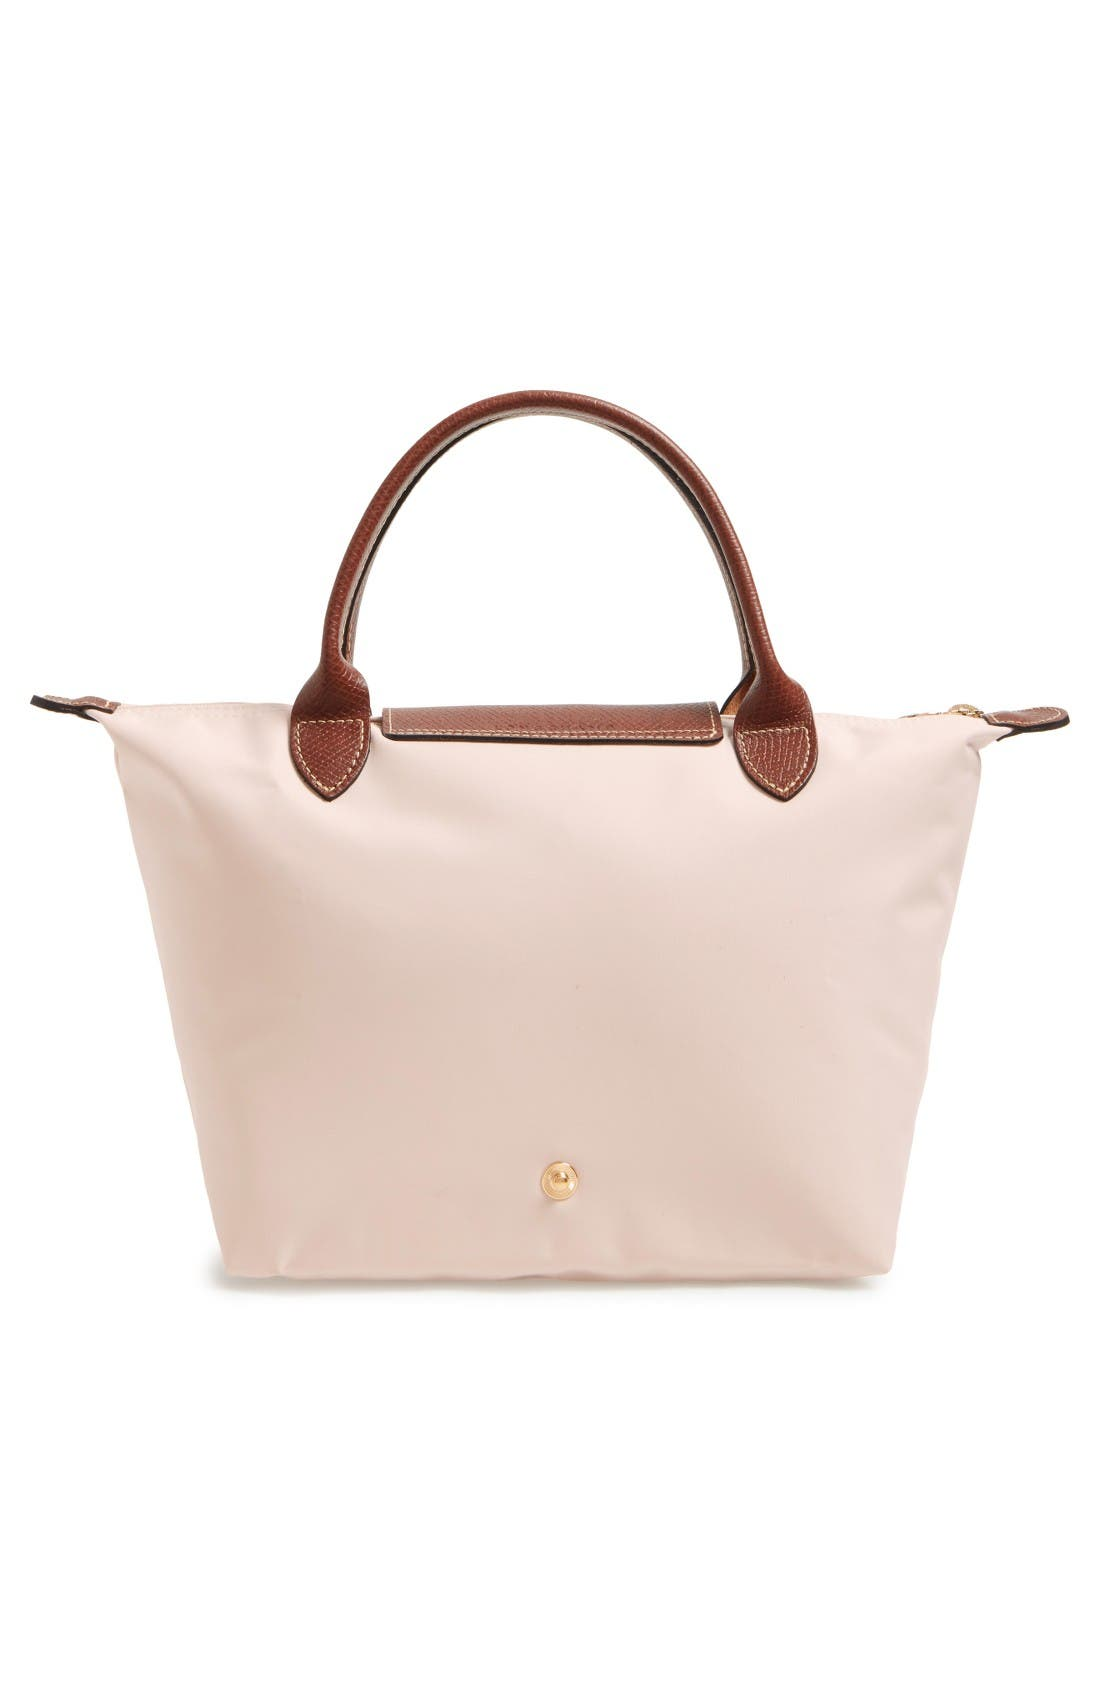 Alternate Image 3  - Longchamp 'Mini Le Pliage' Handbag